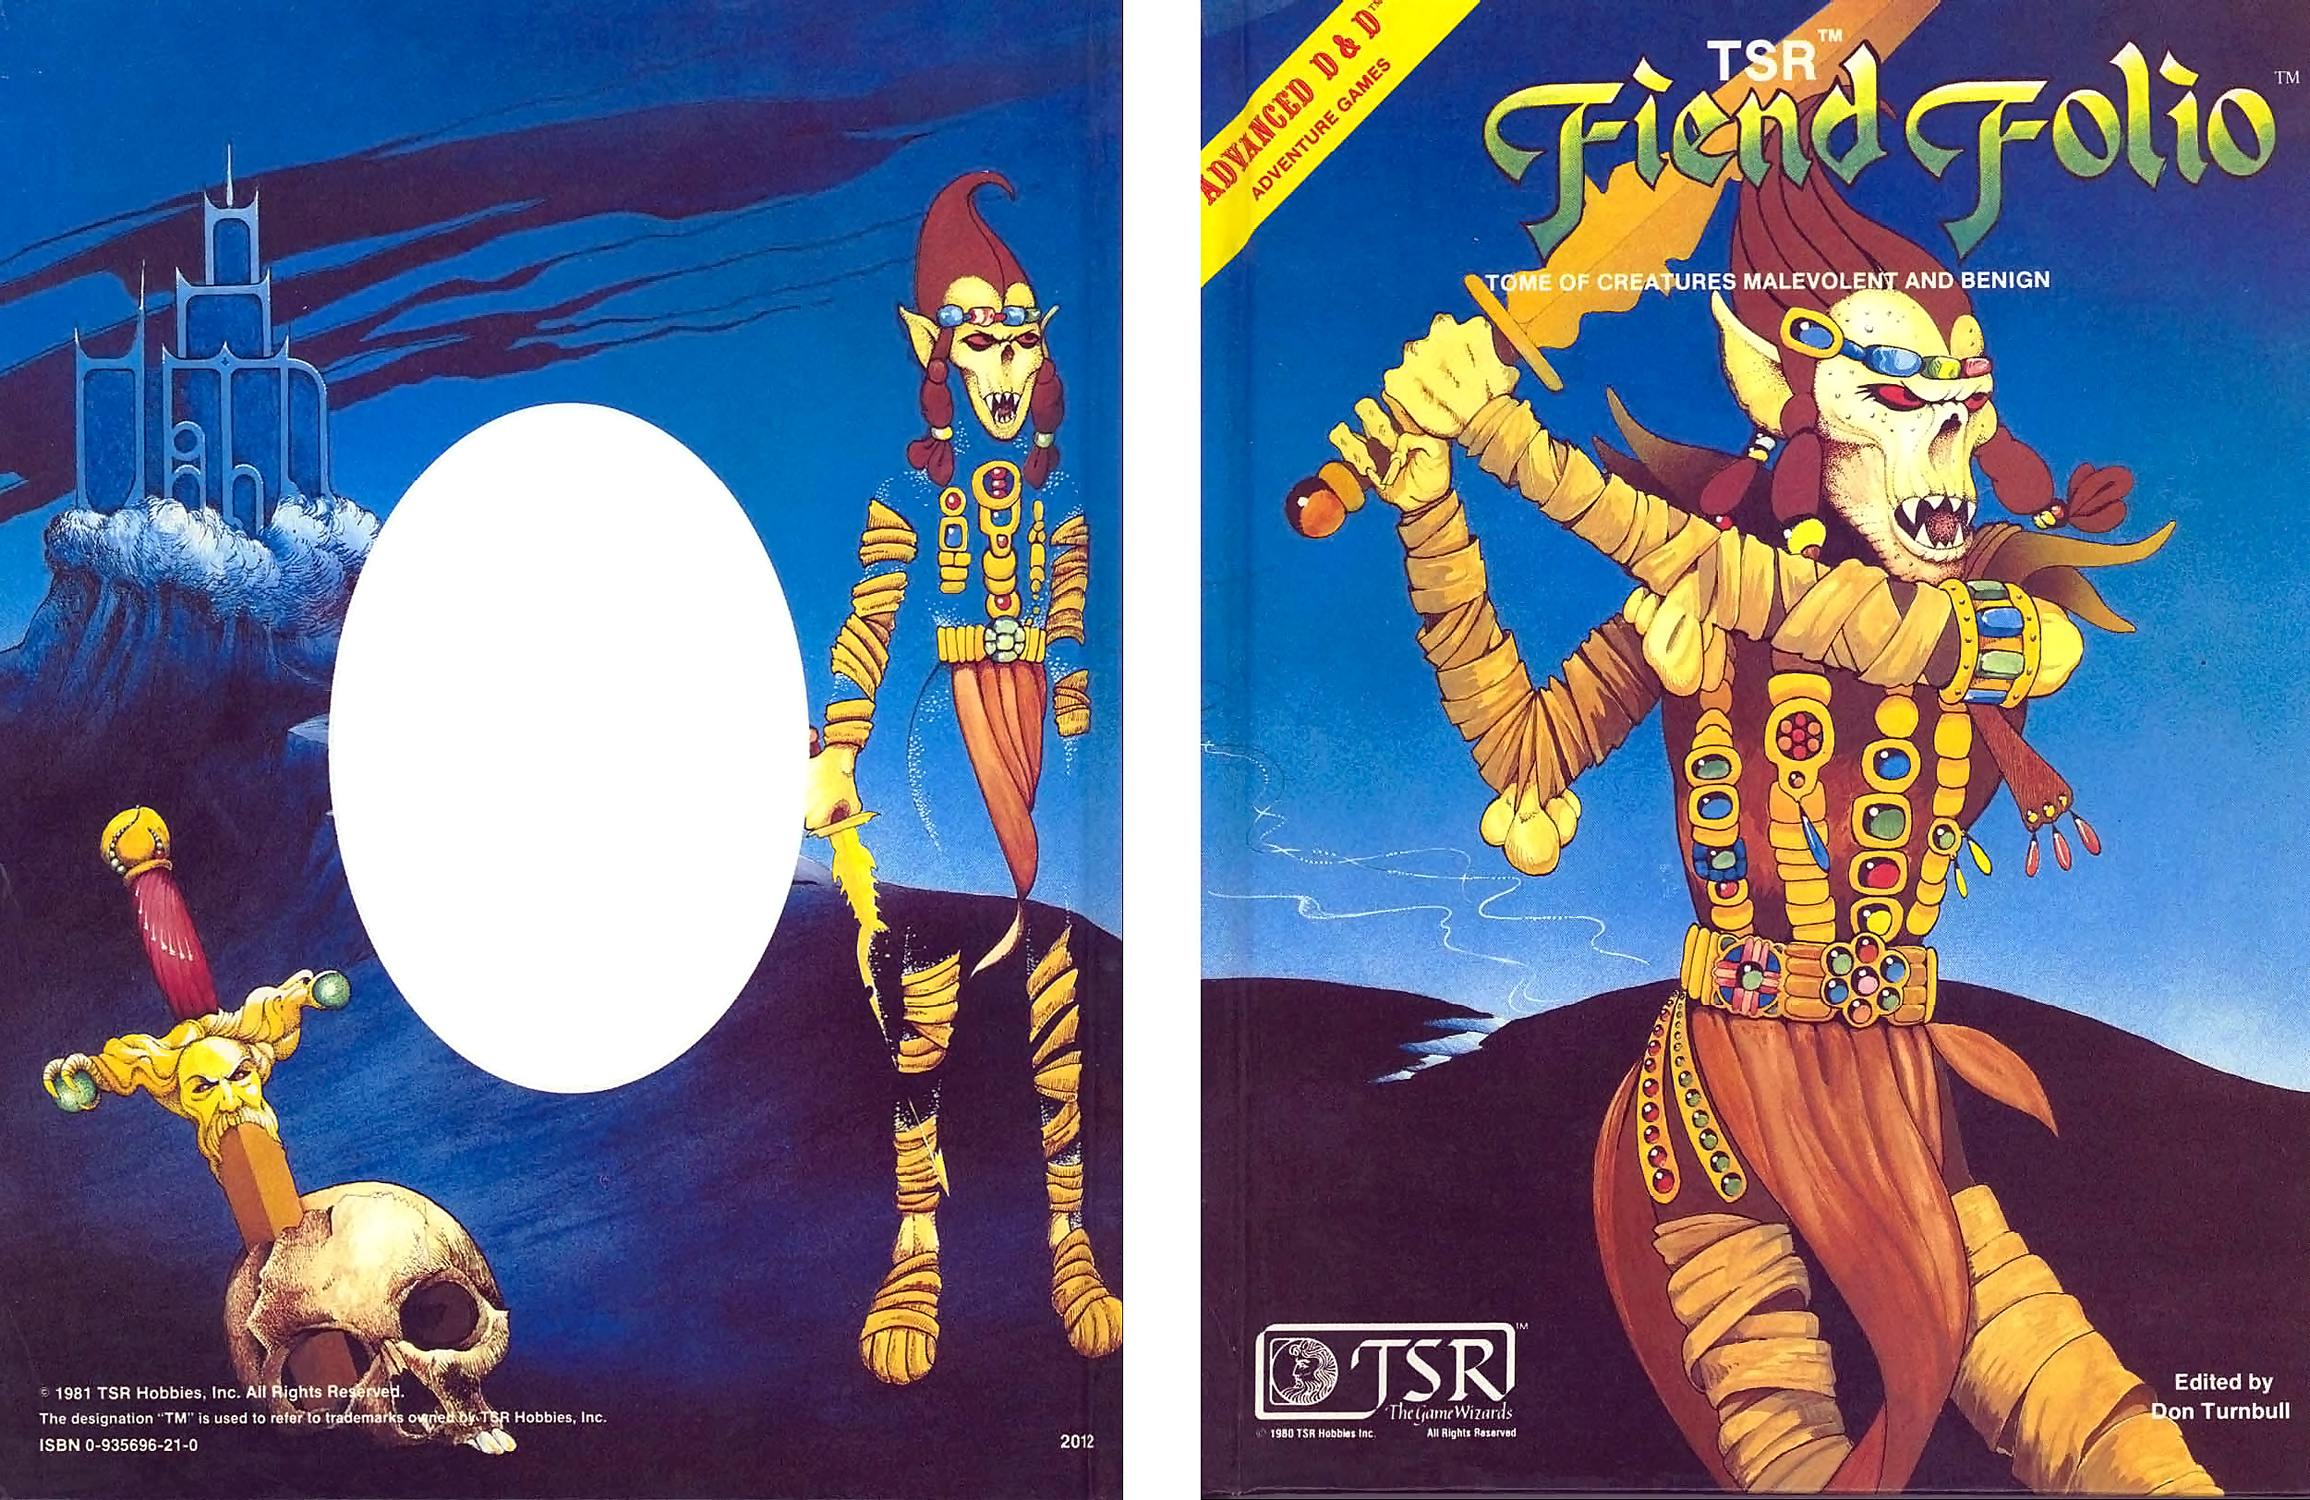 {$tags} Githyanki in copertina - by Emmanuel Fiend Folio (1981) © Wizards of the Coast & Hasbro